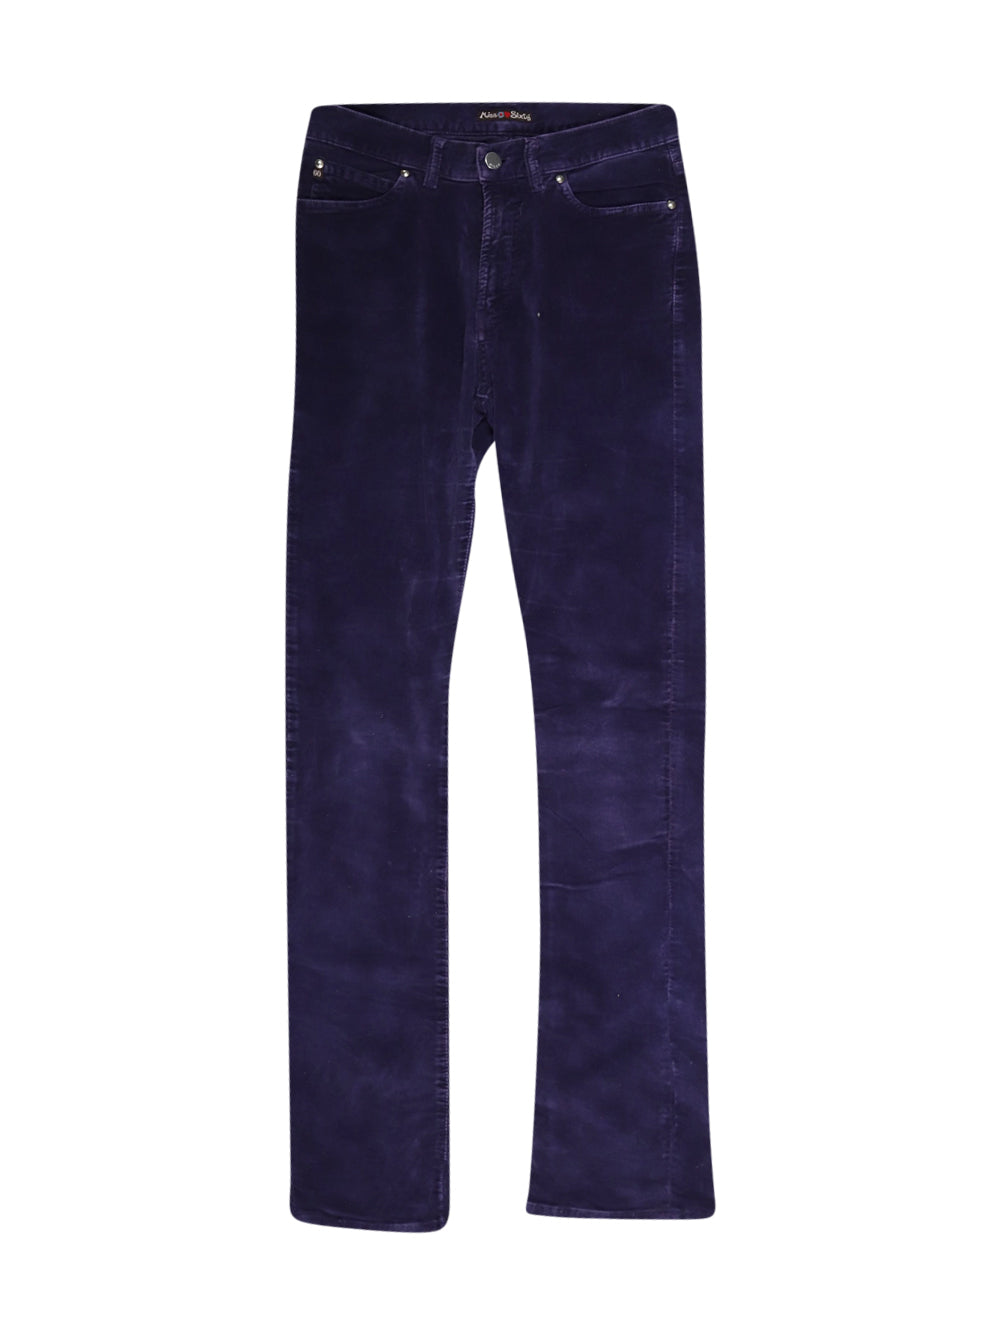 Front photo of Preloved Miss Sixty Violet Woman's trousers - size 10/M